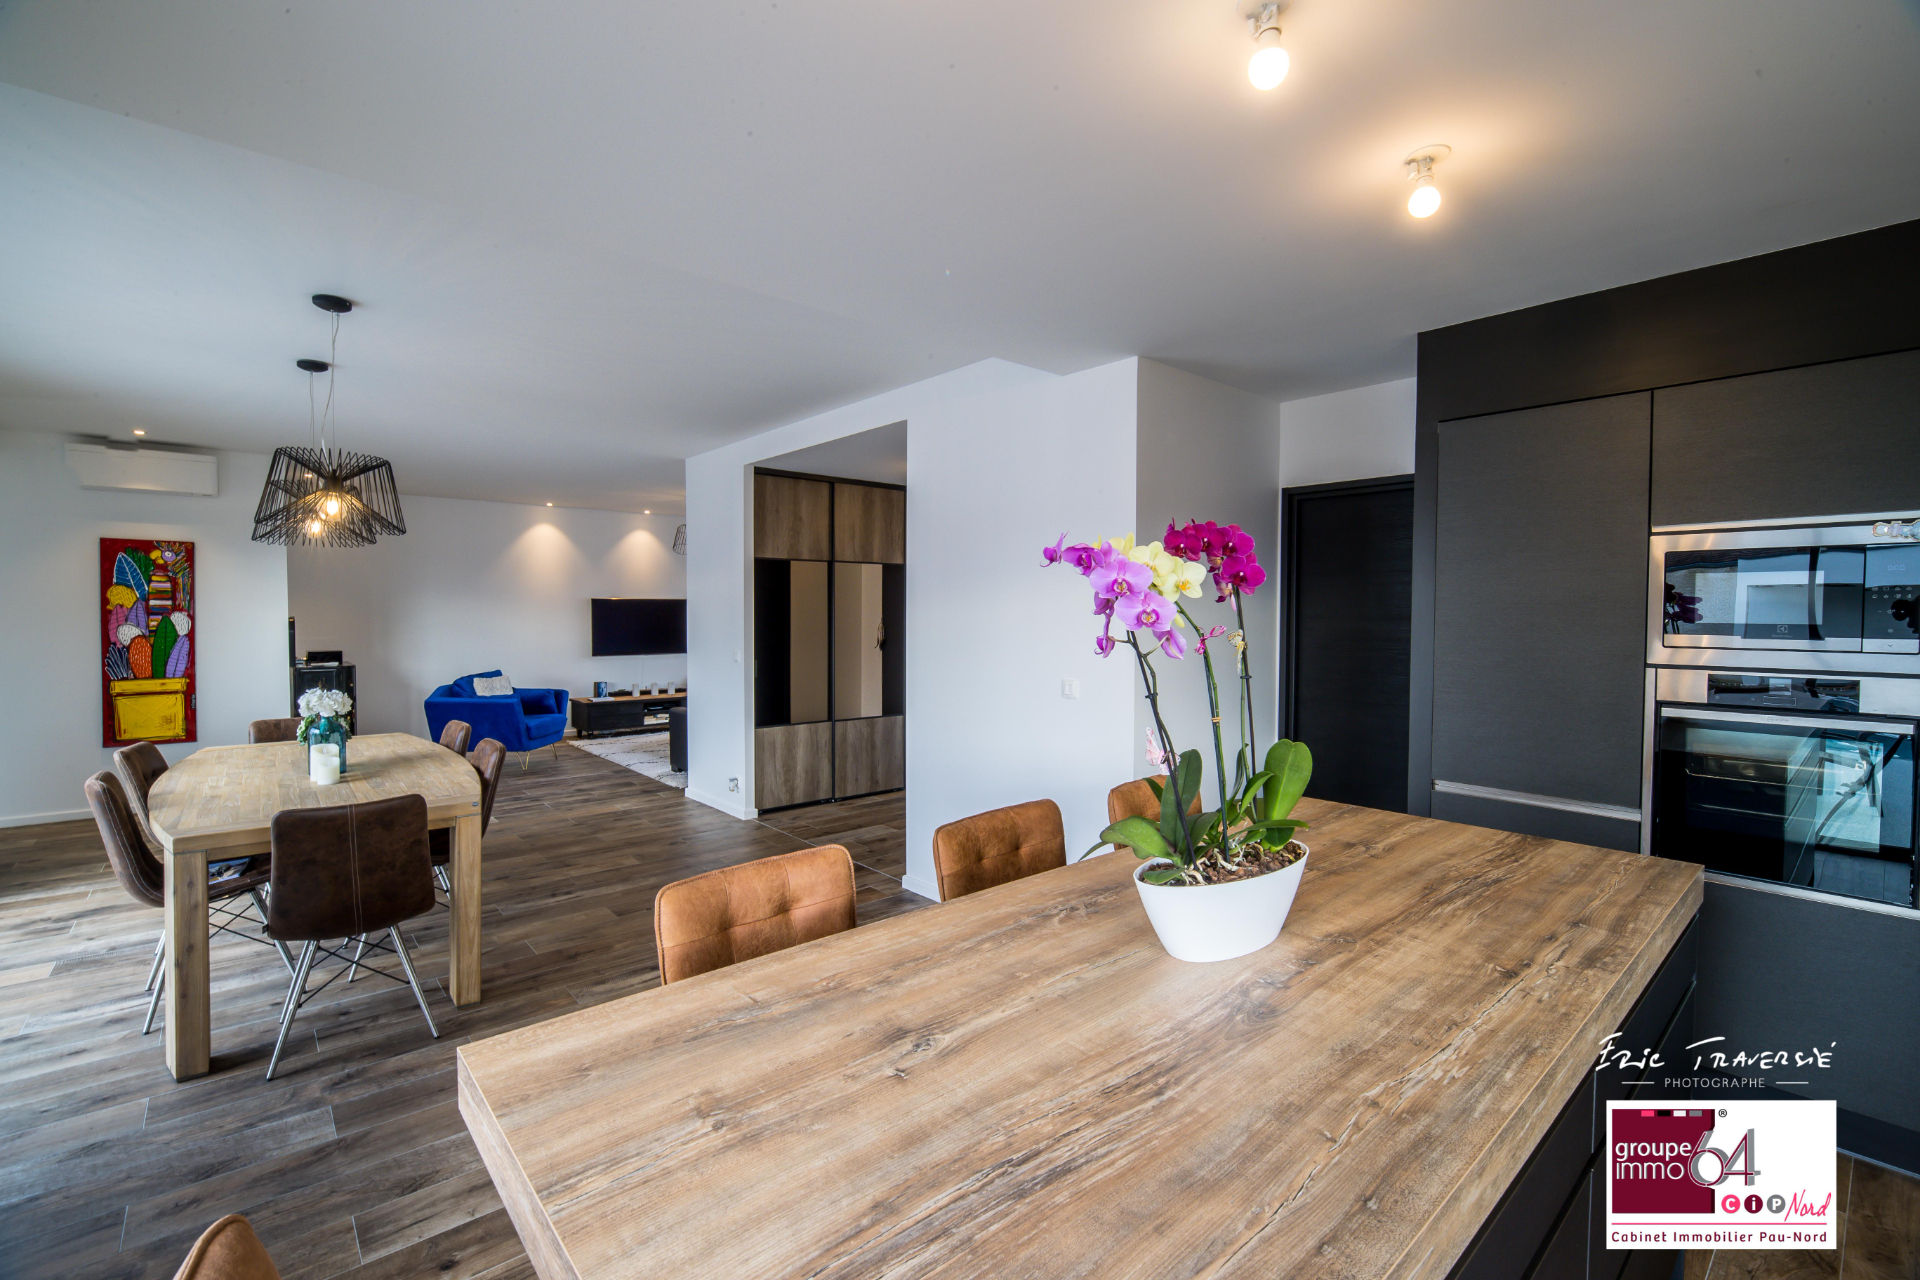 Contemporaine en toit terrasse et piscine (visite virtuelle possible) 2/9